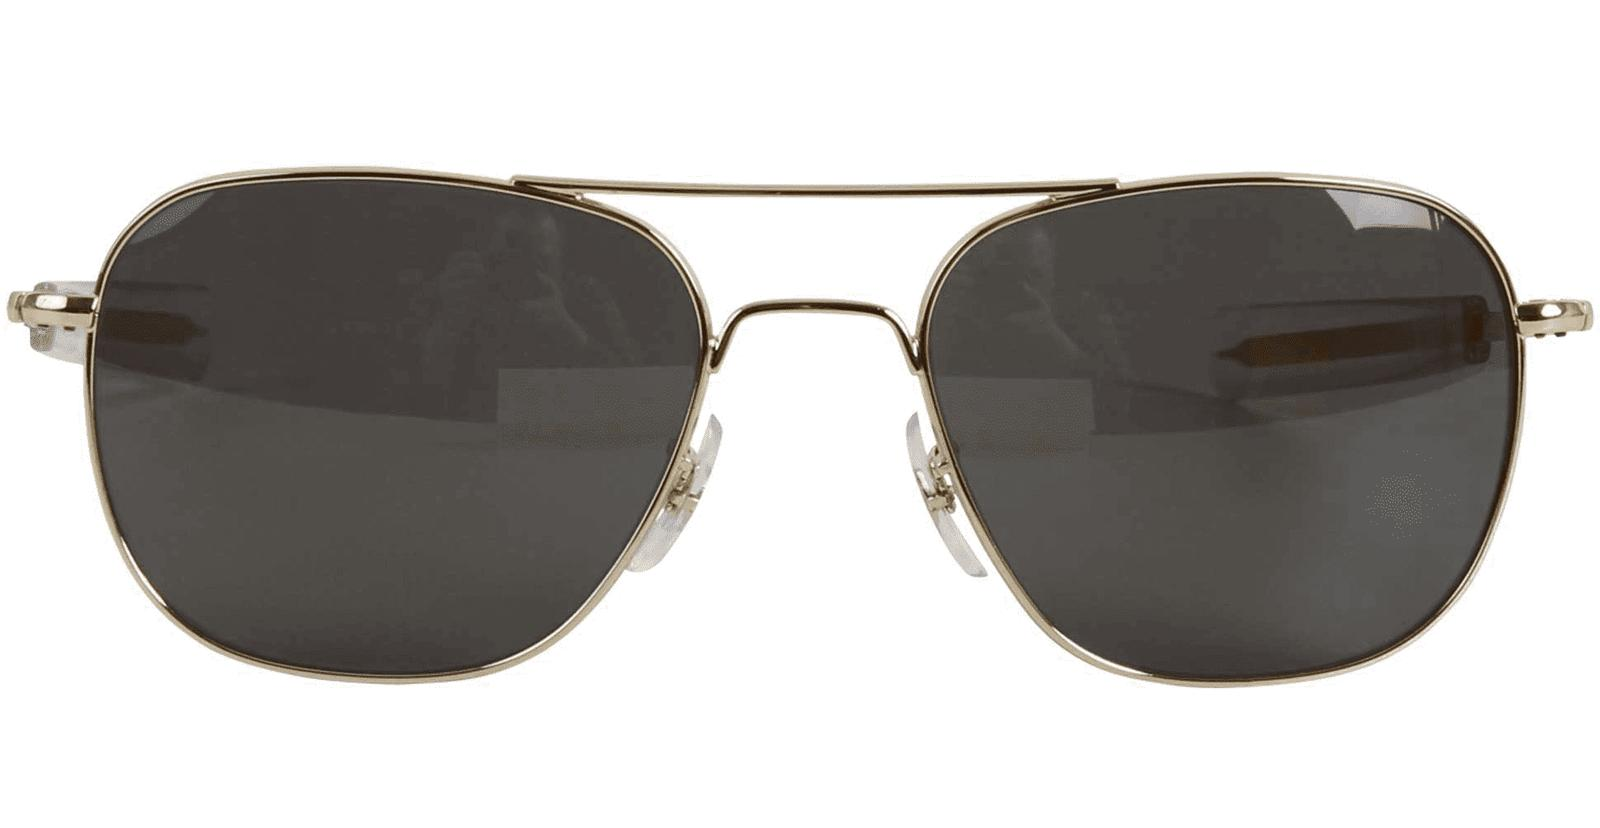 polarized gold 55mm air force pilots sunglasses